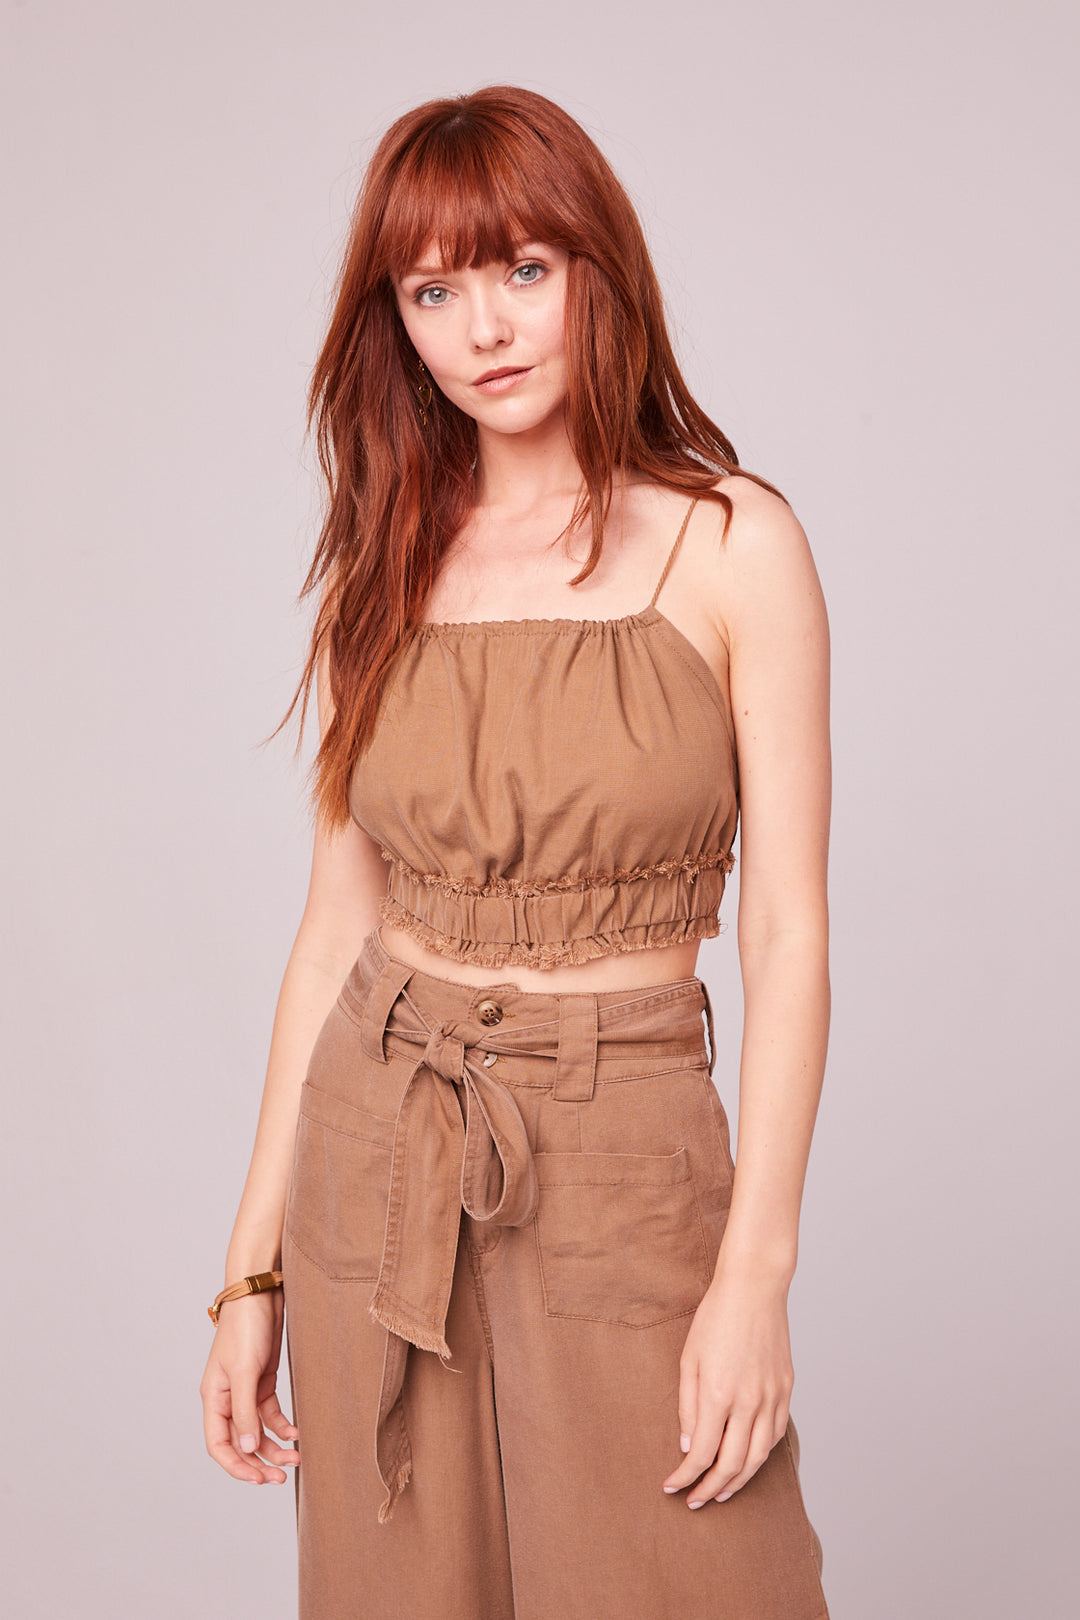 Capri Camel Crop Top Master